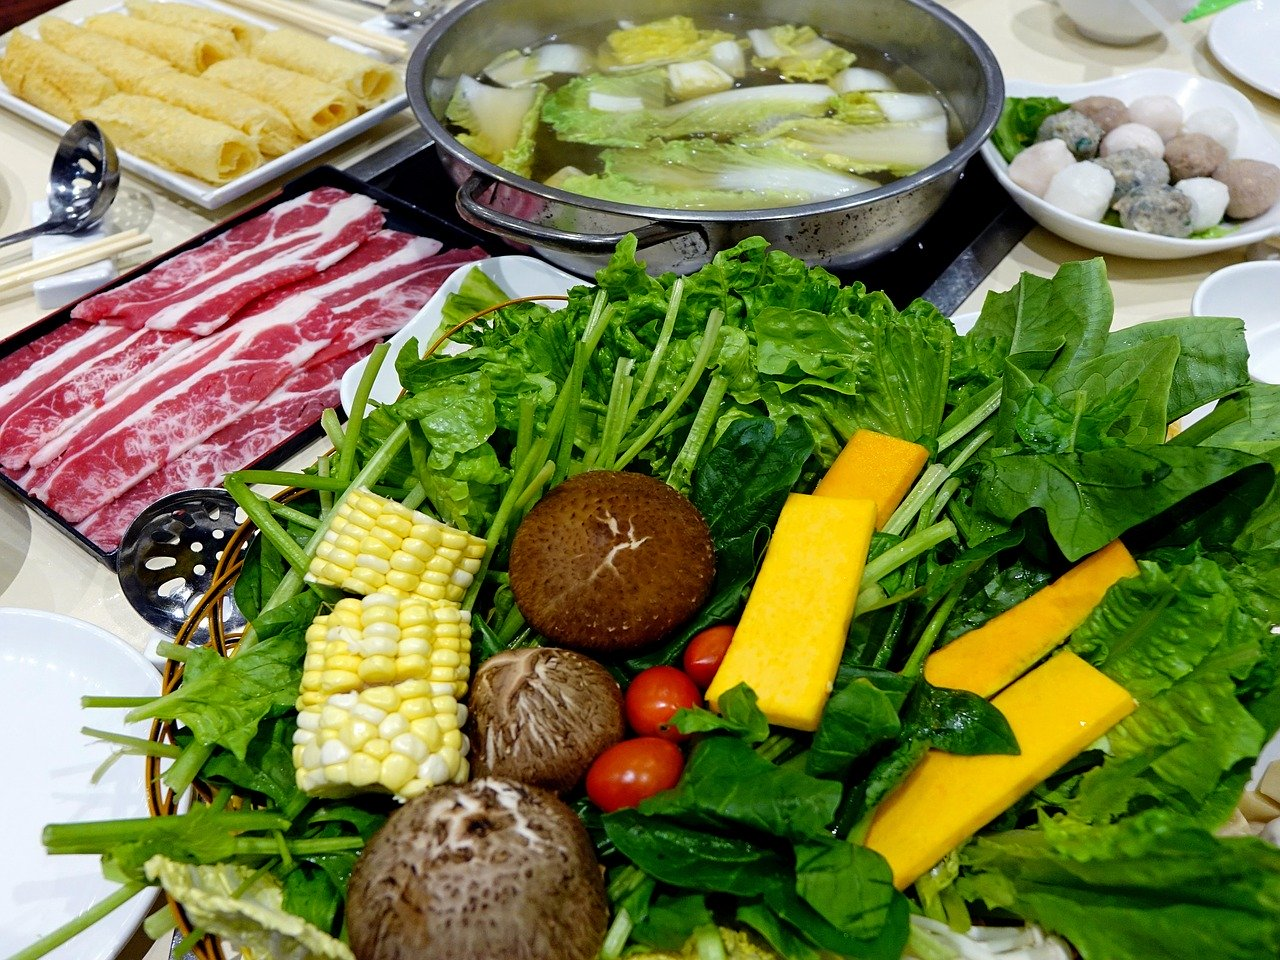 steamboat, vegetables, meat